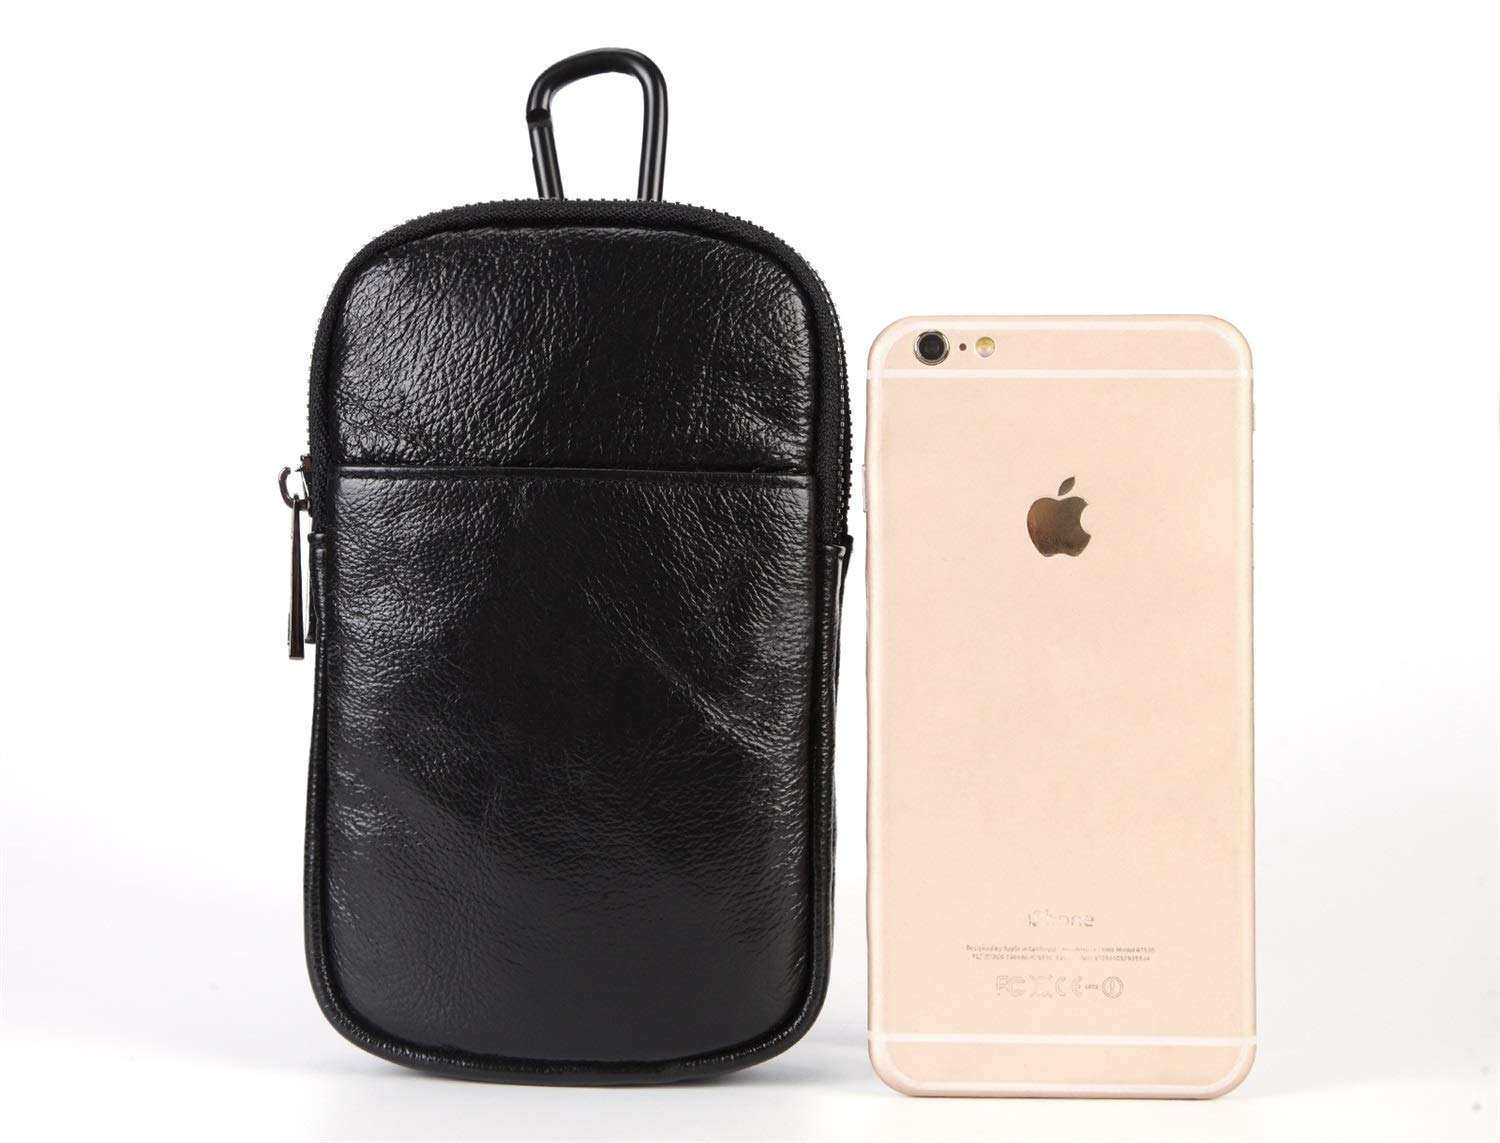 Hanging Neck Bag Double-Layer Main Bag Shengjuanfeng 2018 New Mens Pockets Mobile Phone Bag First Layer Cowhide Color : Black, Size : S